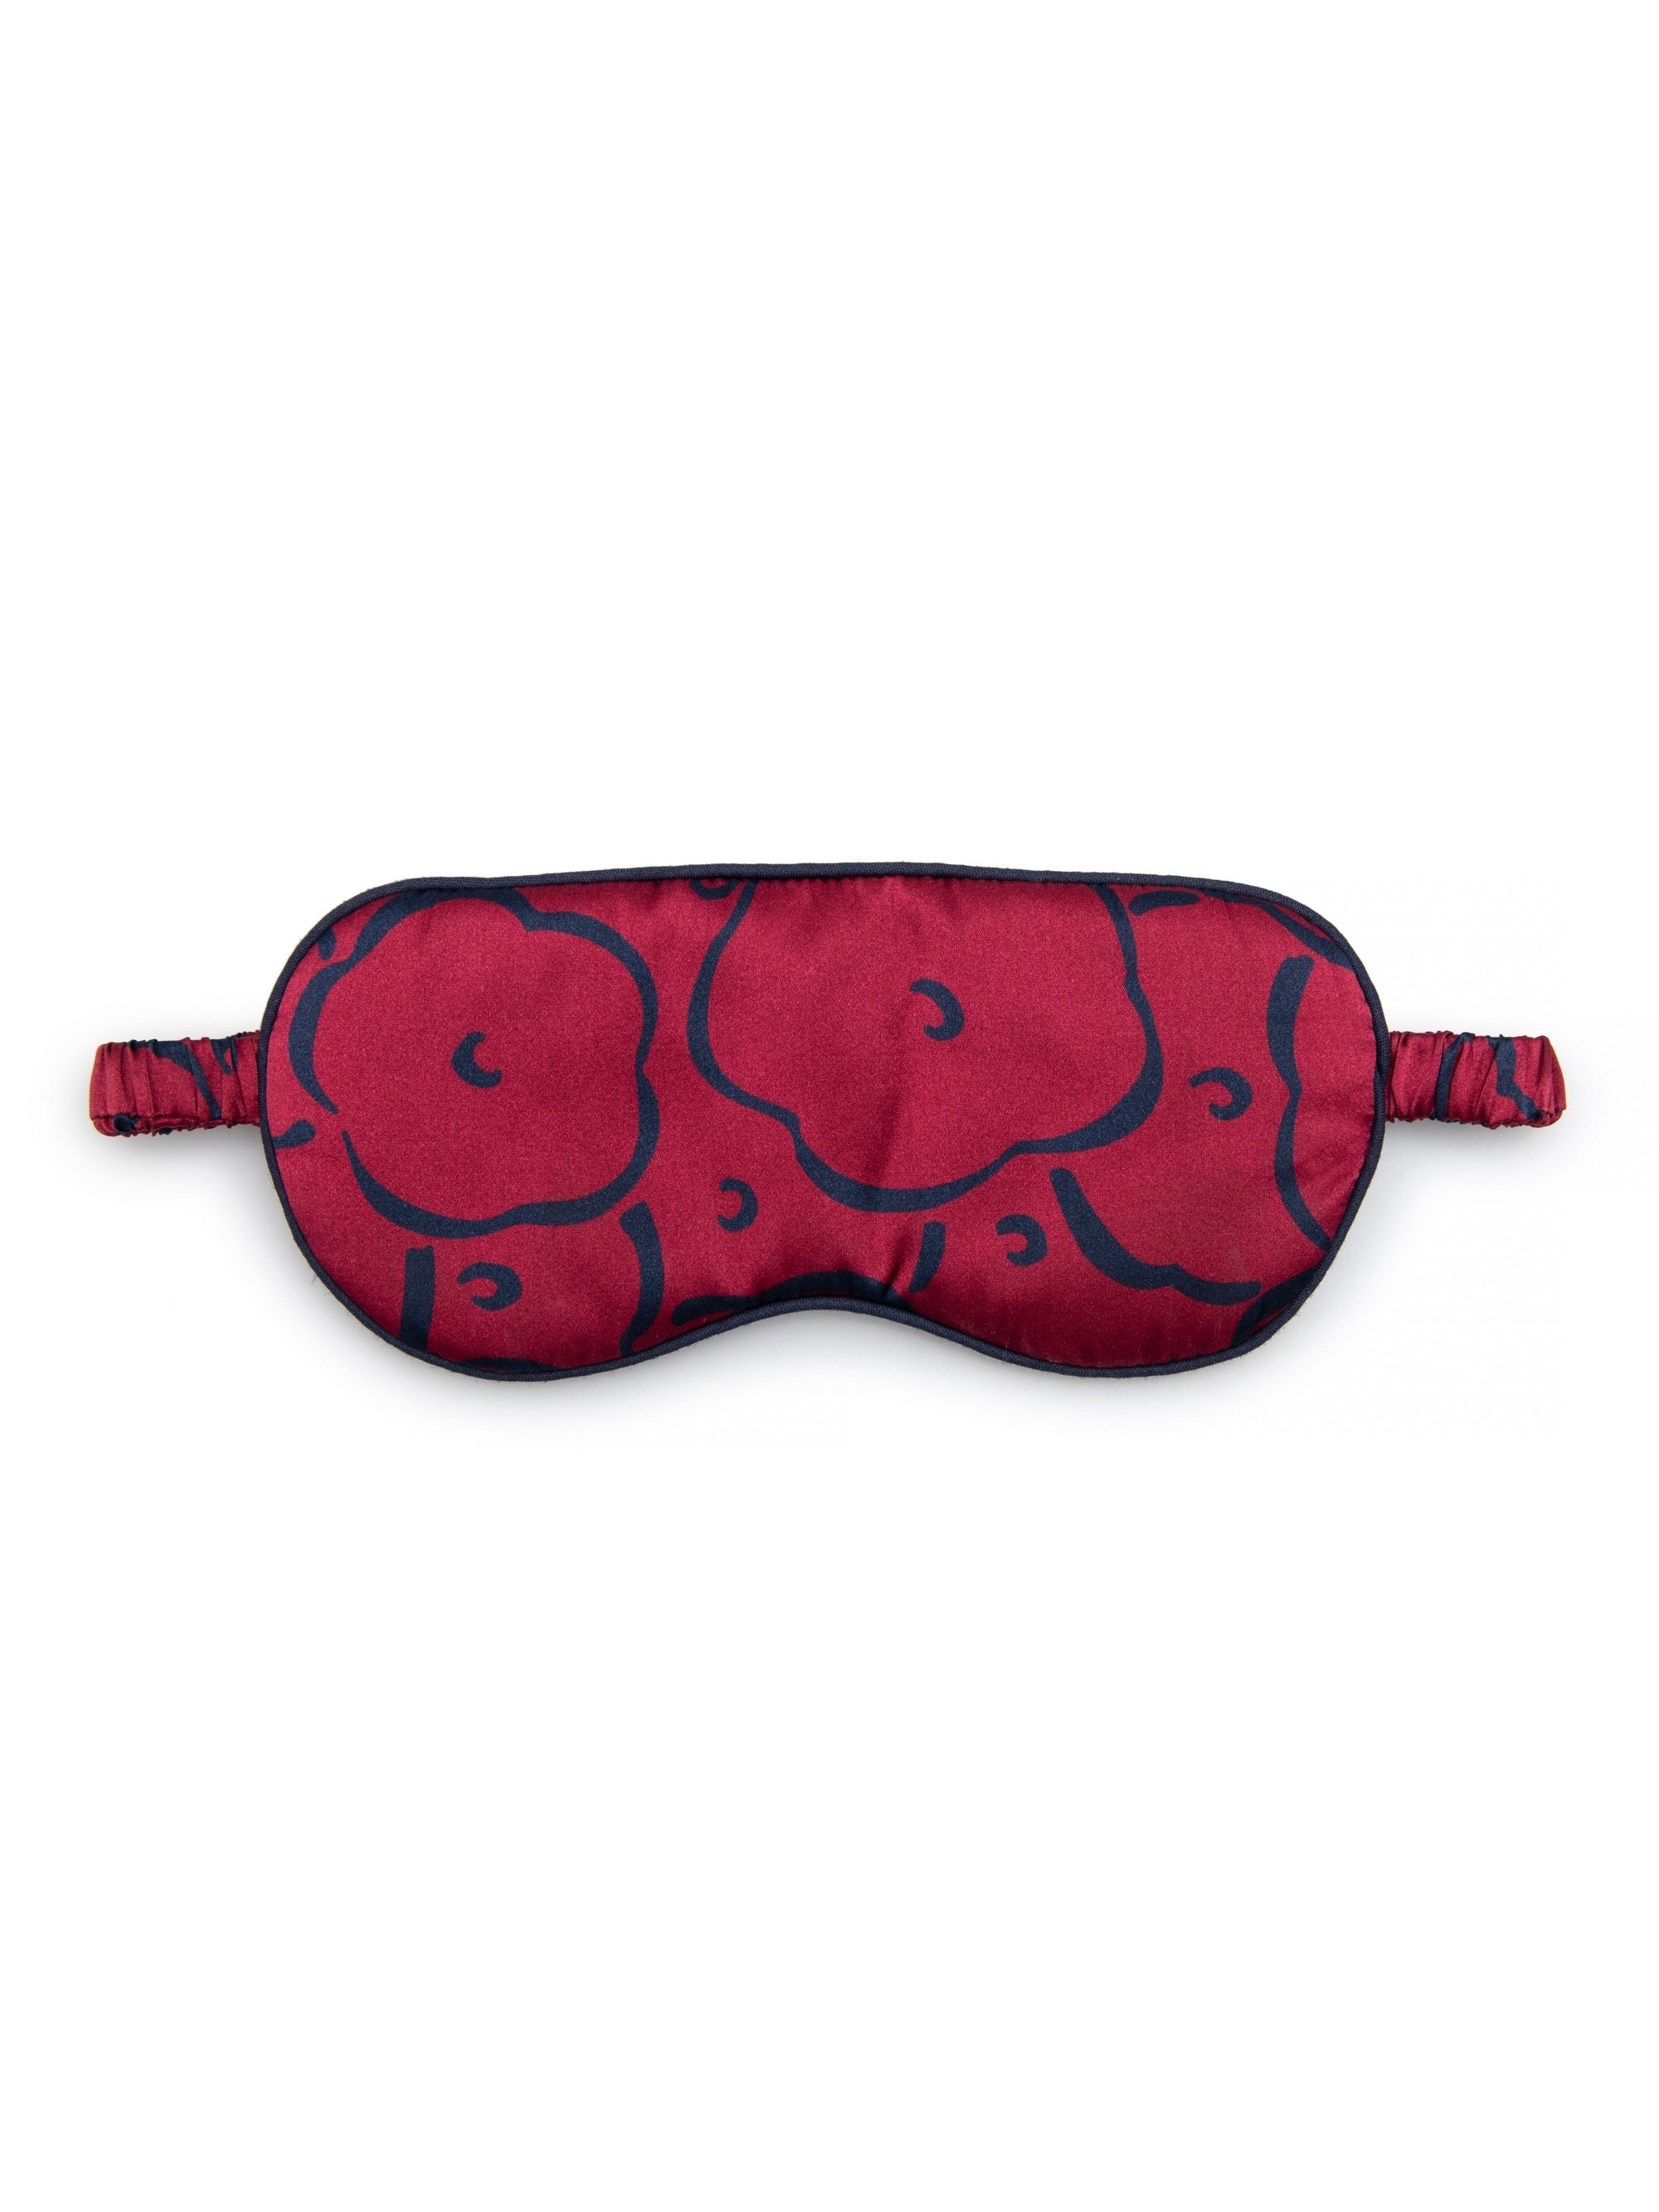 Reversible Eye Mask Brindisi 53 Pure Silk Satin Crimson